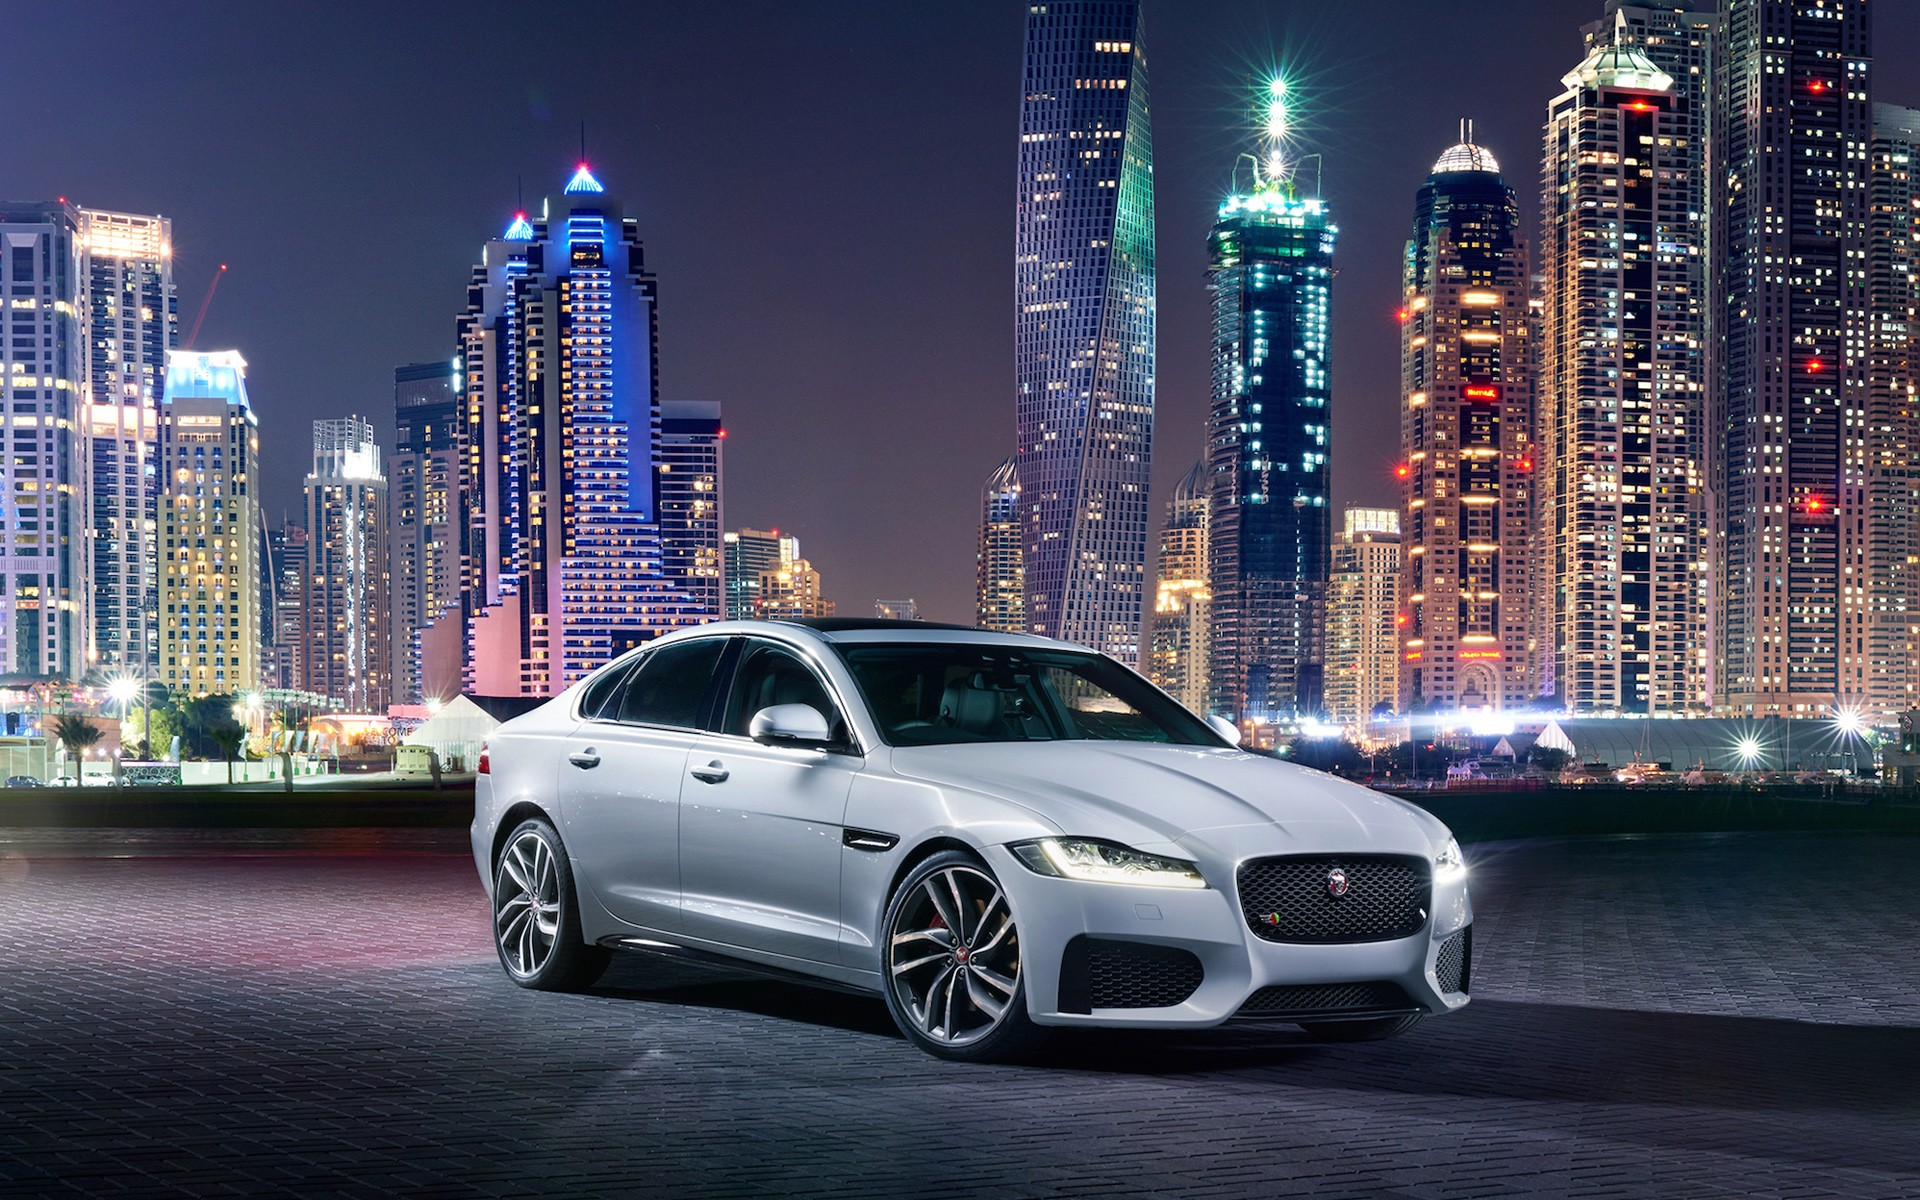 Jaguar Xf Hd Cars 4k Wallpapers Images Backgrounds Photos And